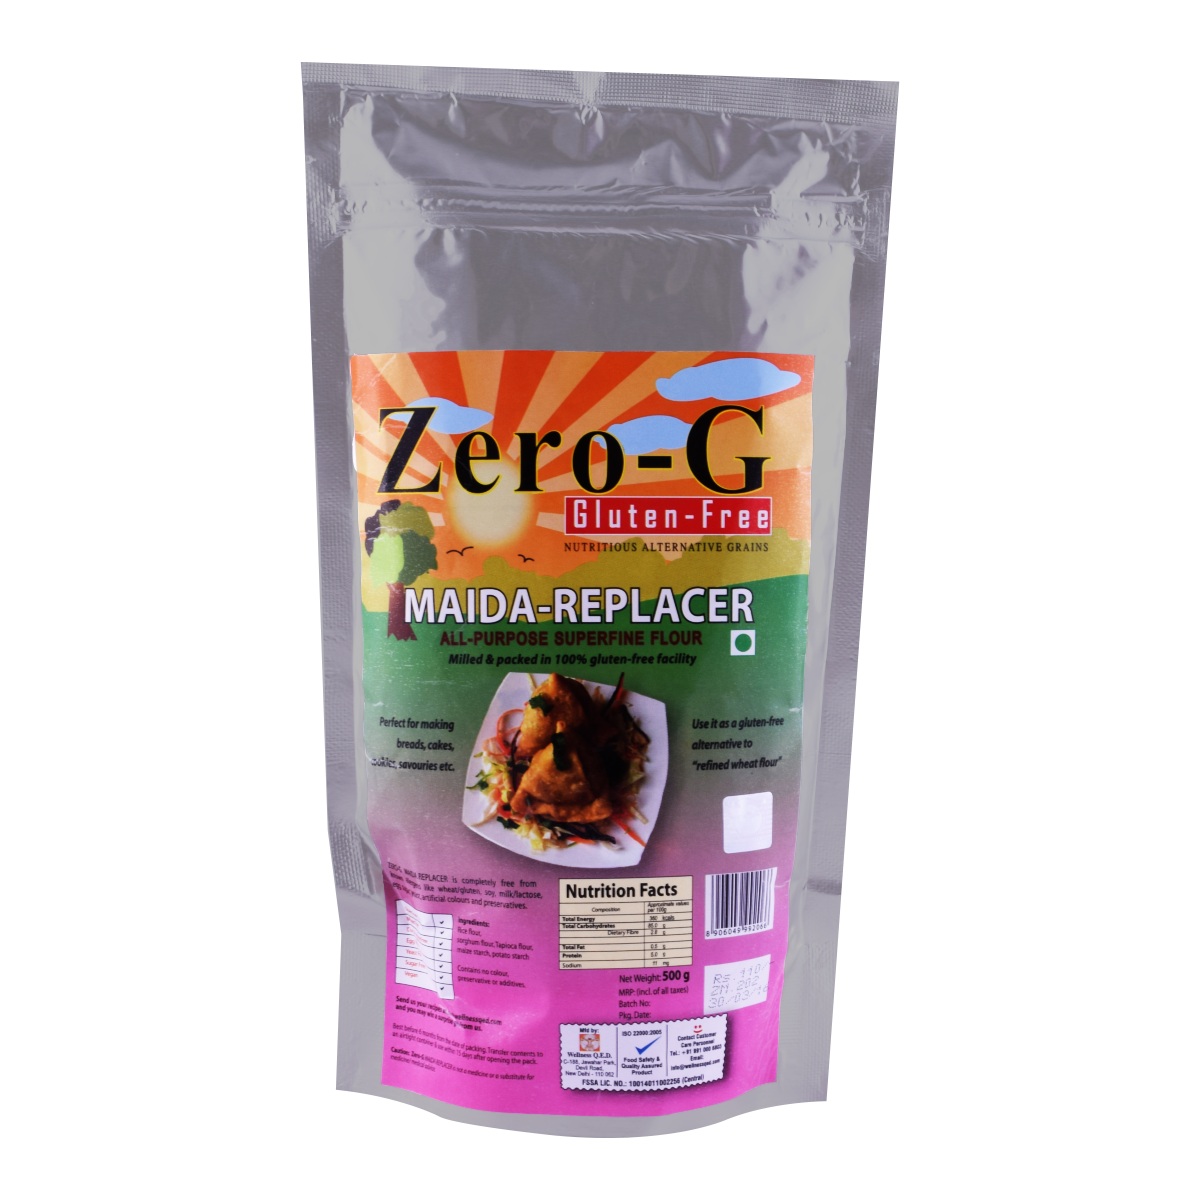 Zero-G Maida-Replacer